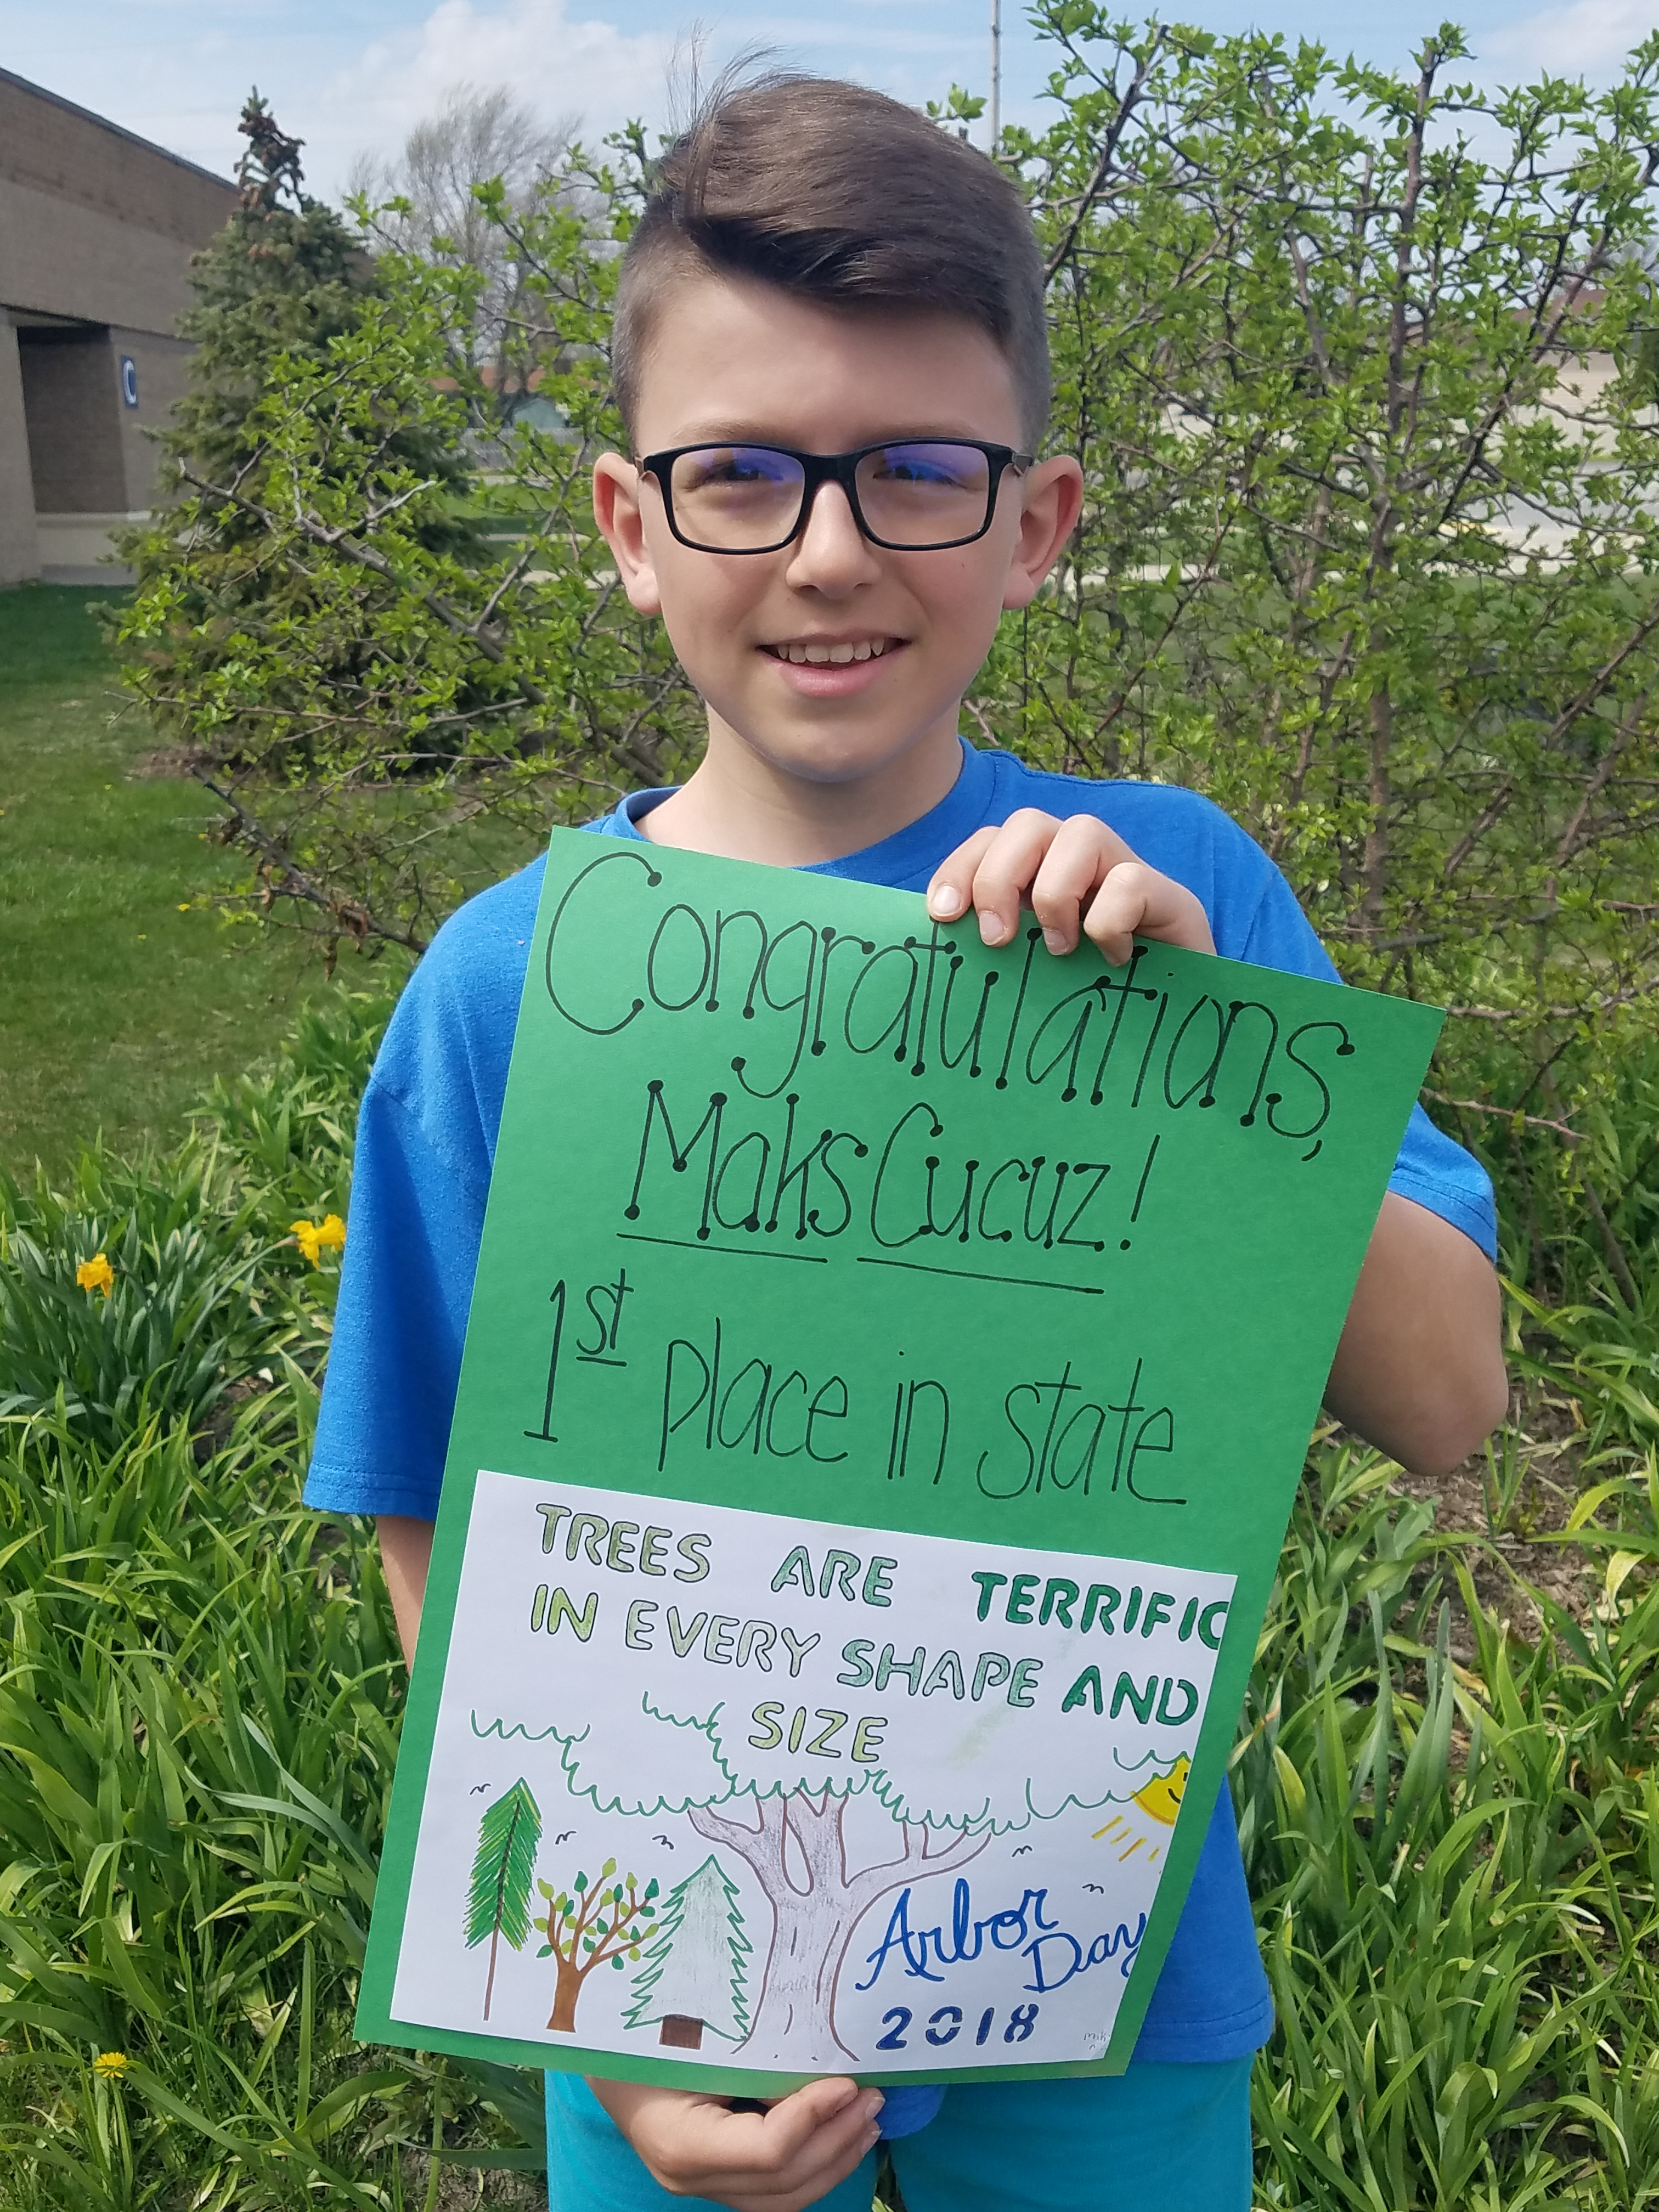 Maks Cucuz, grade 5 Grimmer MS, took first place for his design in the Indiana Division of Forestry Arbor Day Poster contest. Congratulations Maks!